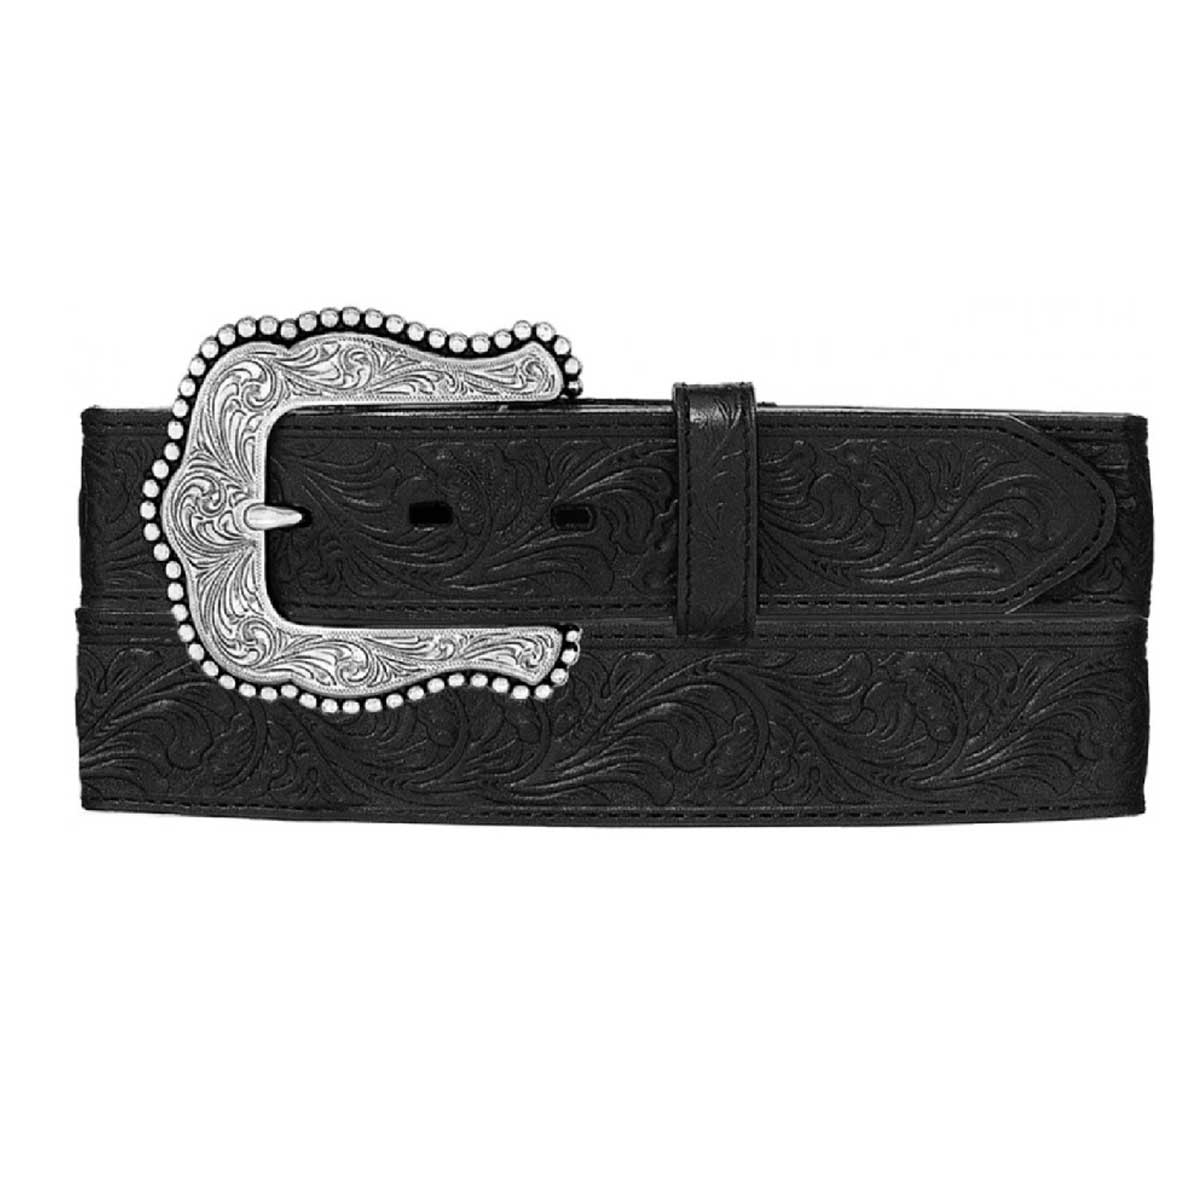 Leegin Creative Leather Tony Lama Women's Layla Floral Belt - Black